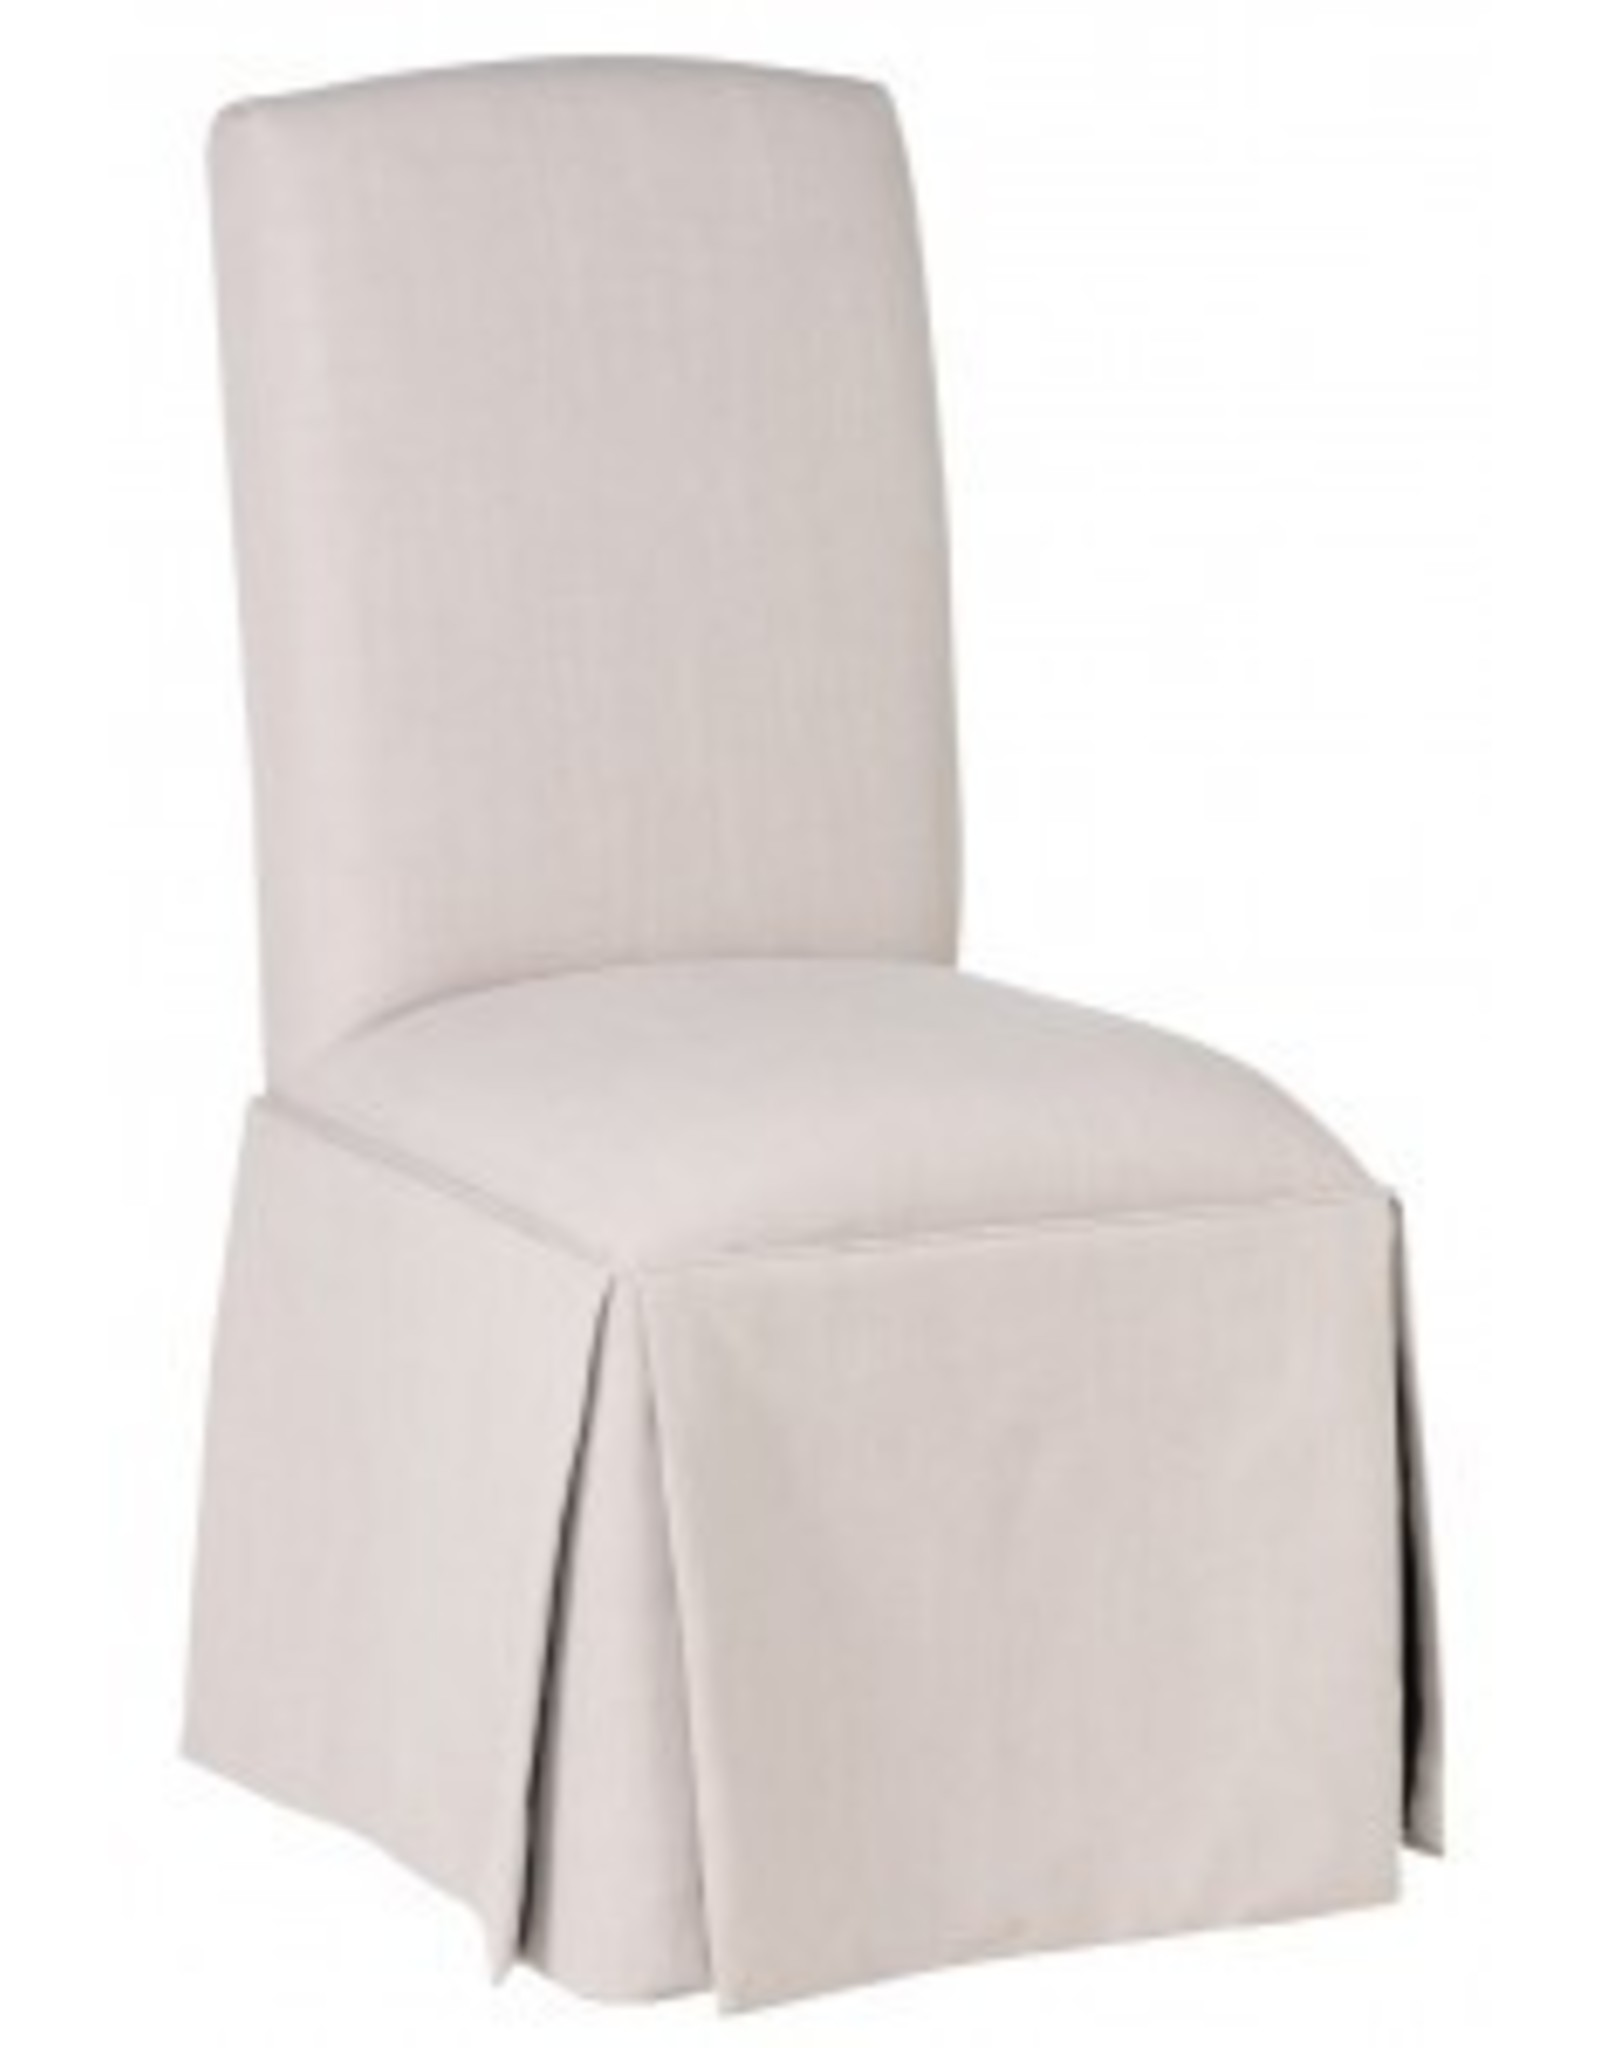 Adele Stone Dining Chair